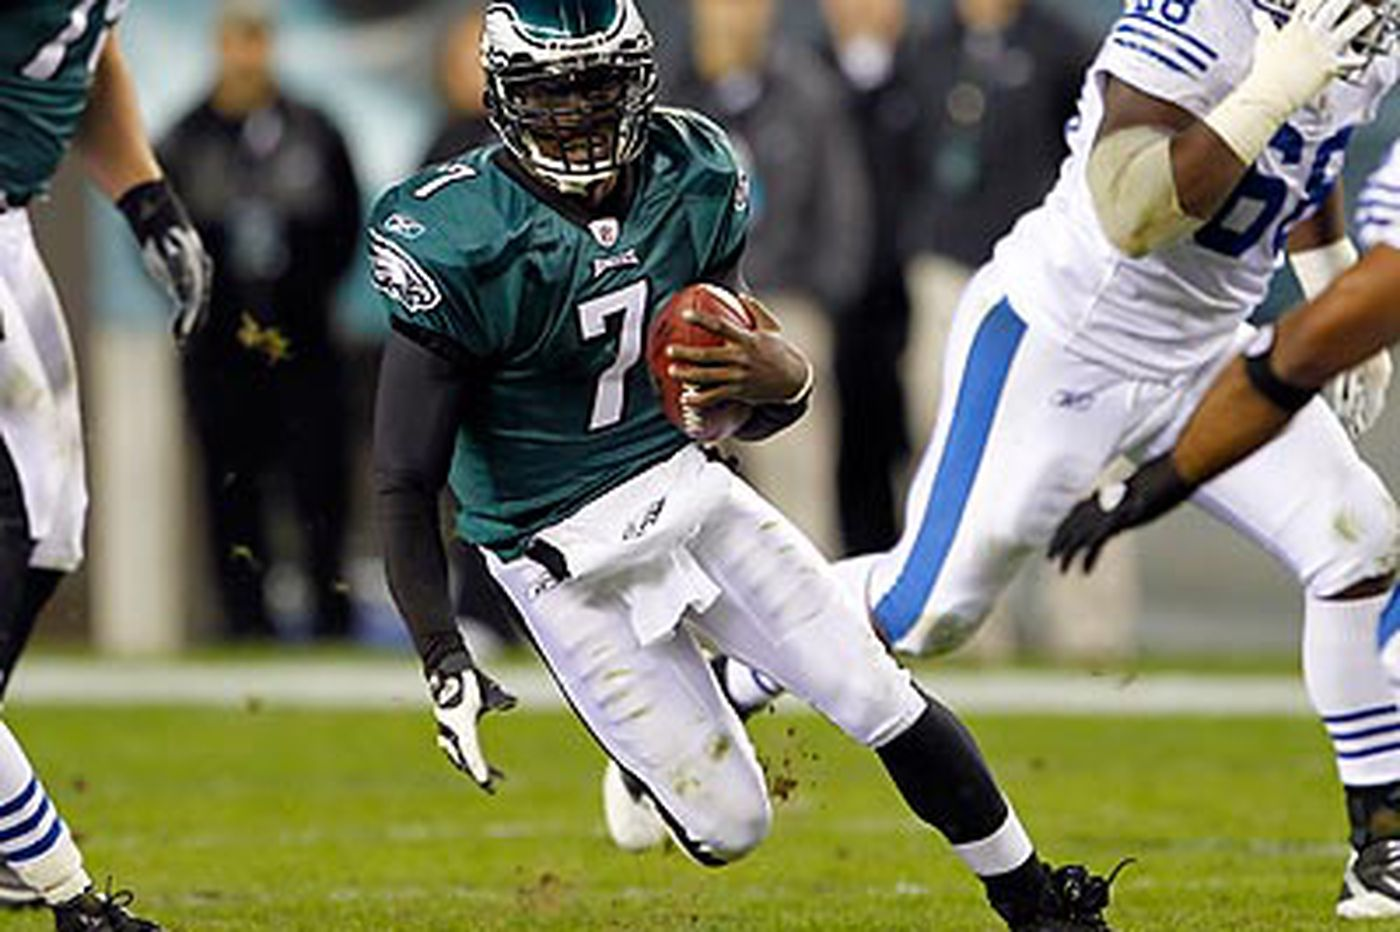 Eagles have had no contract talks with Vick